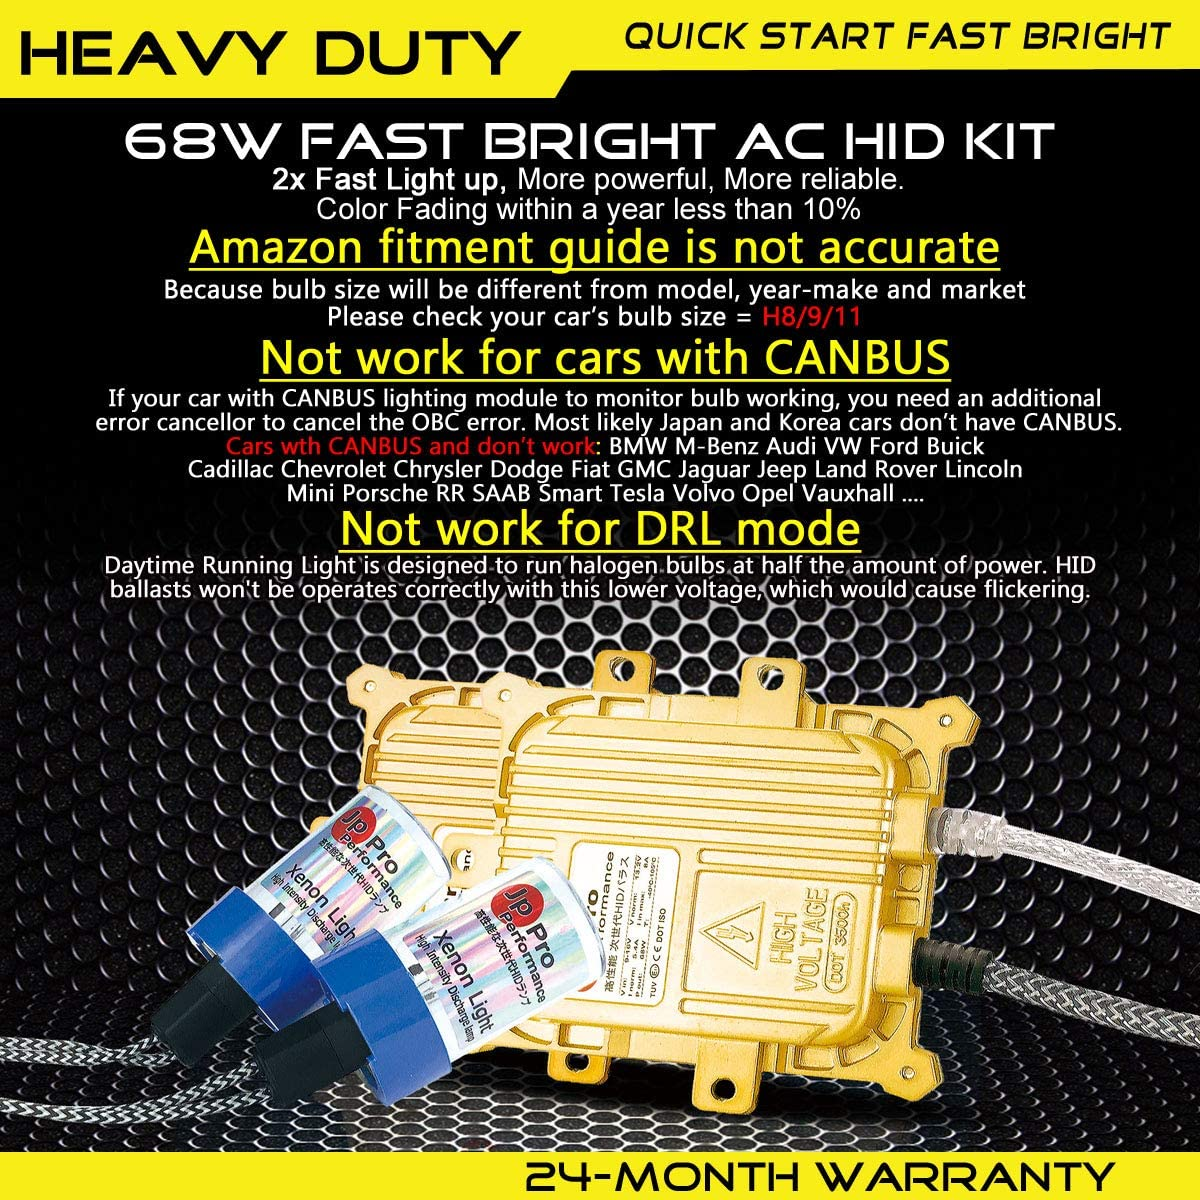 68W 4300K Heavy Duty Fast Bright H1 AC HID Bulbs Bundle with AC Digital Slim Ballasts for 12V NON-CANBUS Vehicles OEM Light Yellow